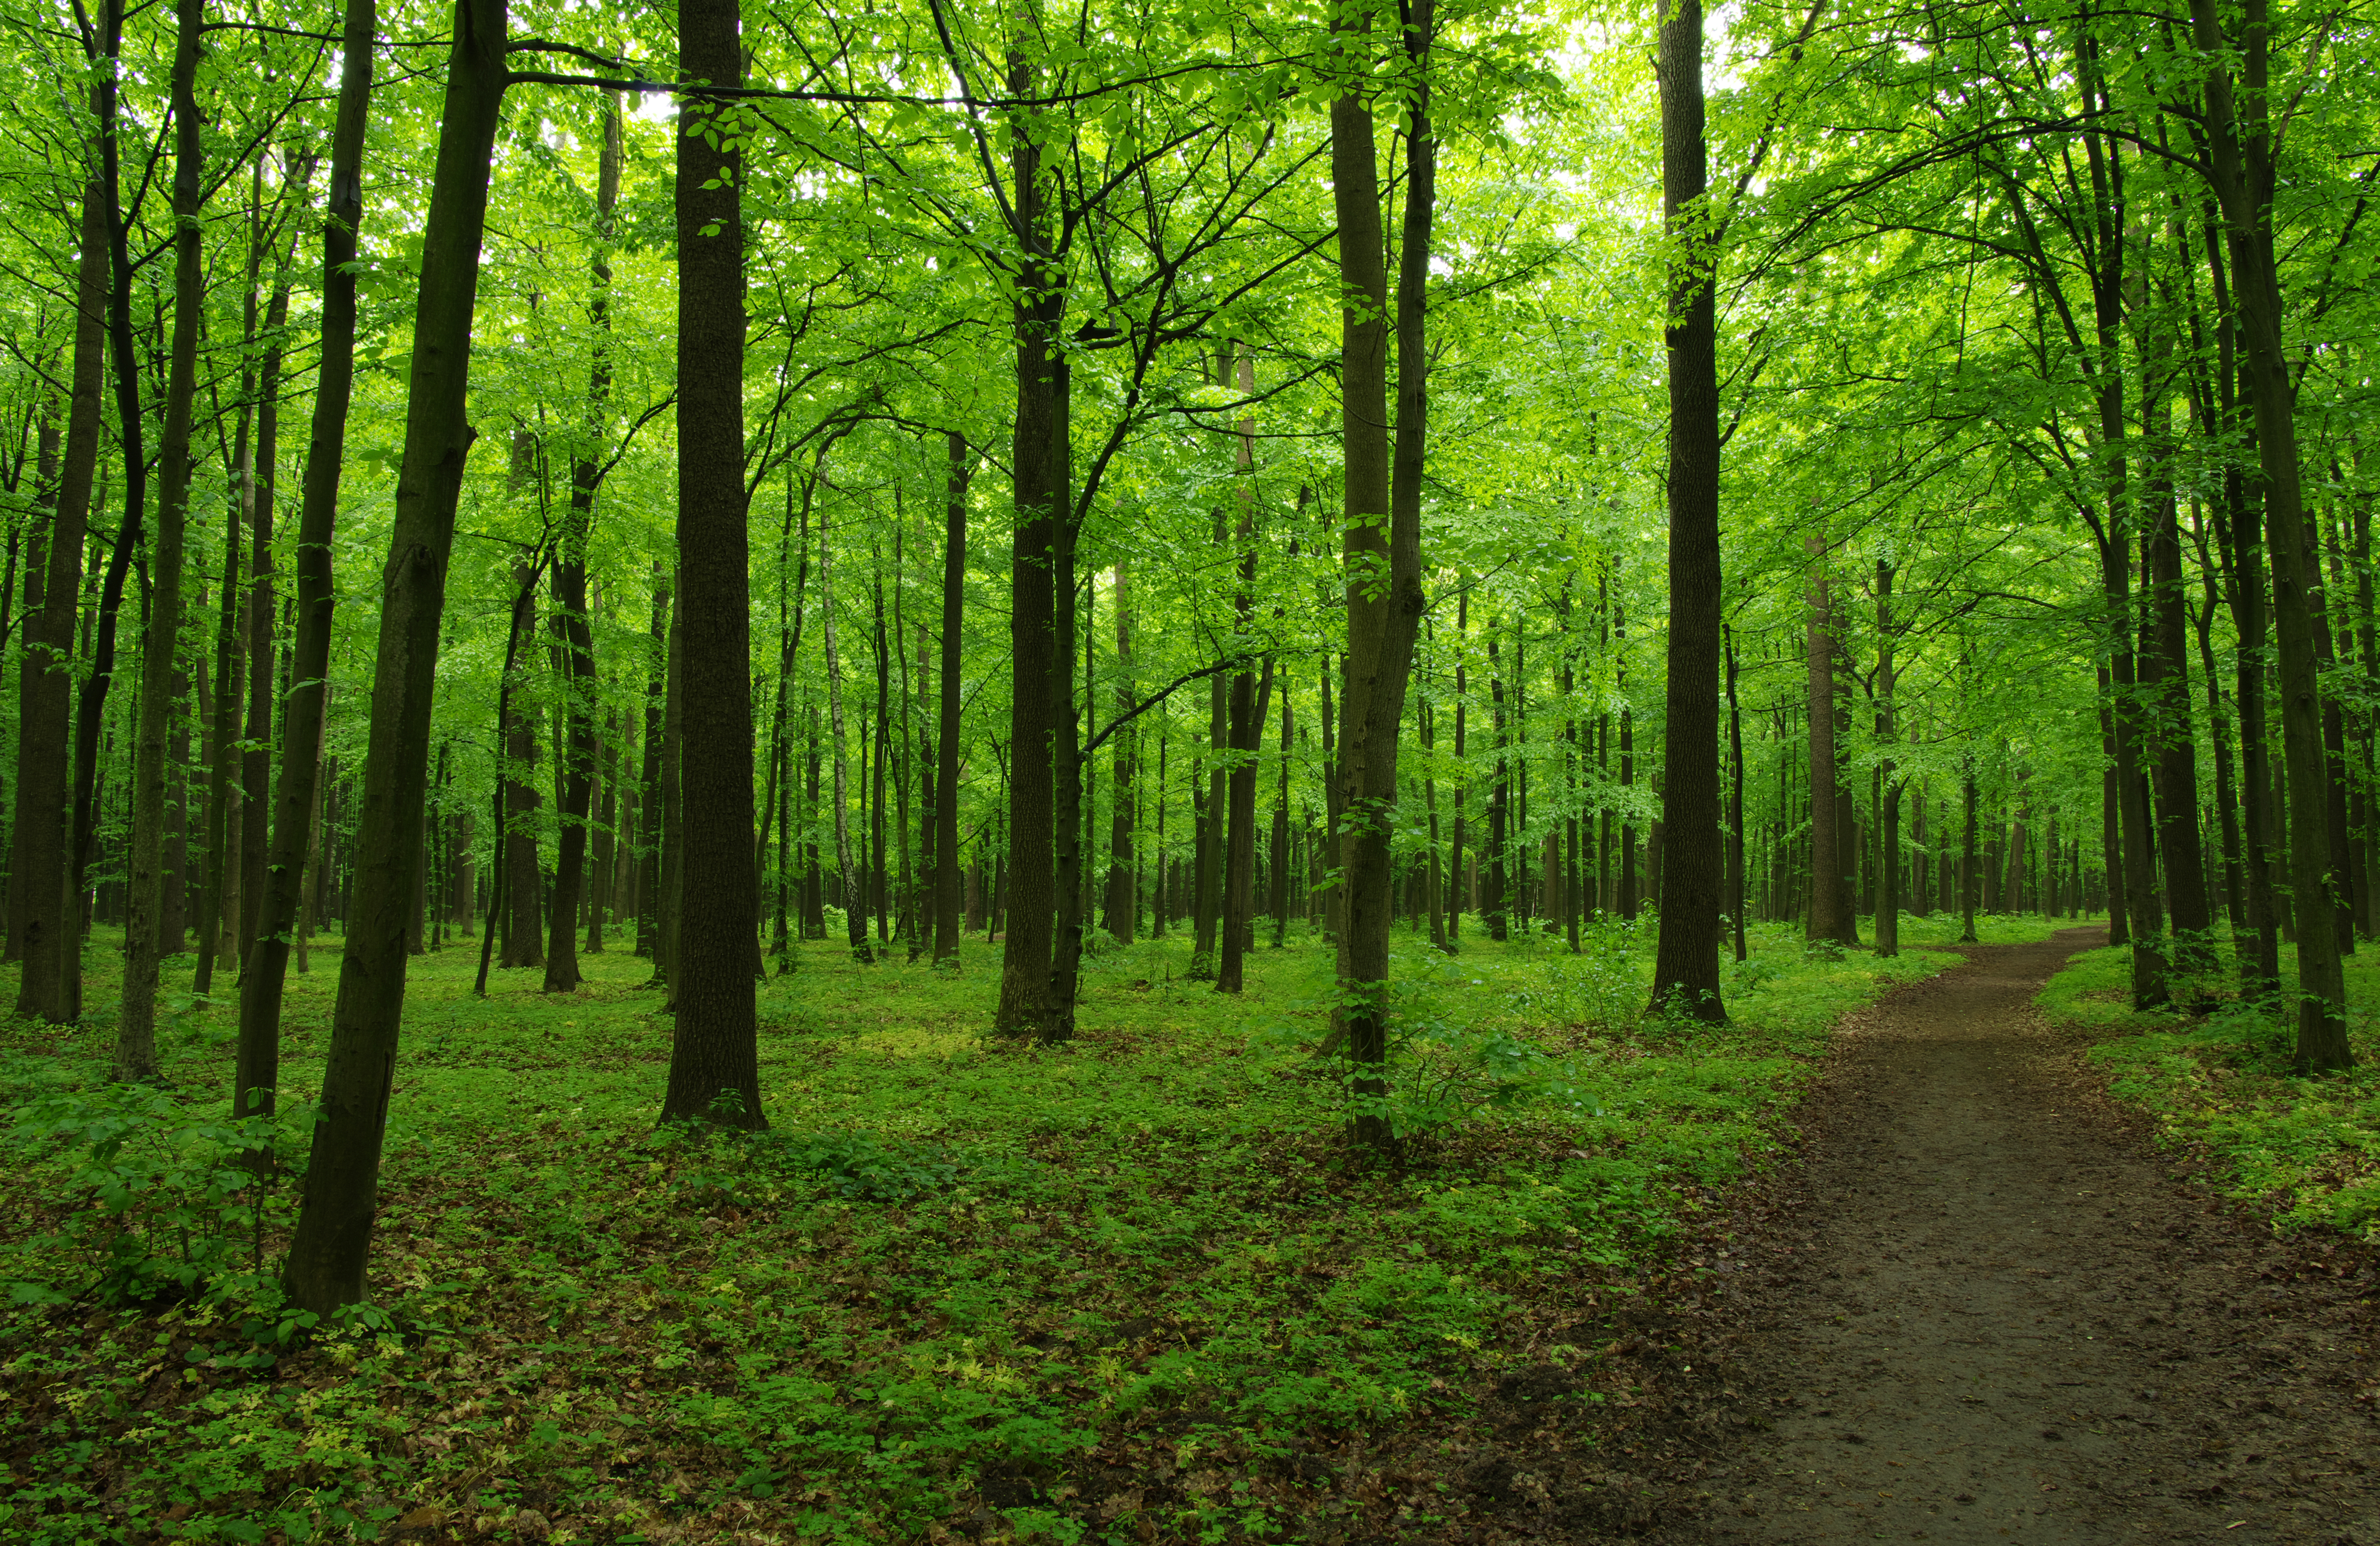 Image of green forest